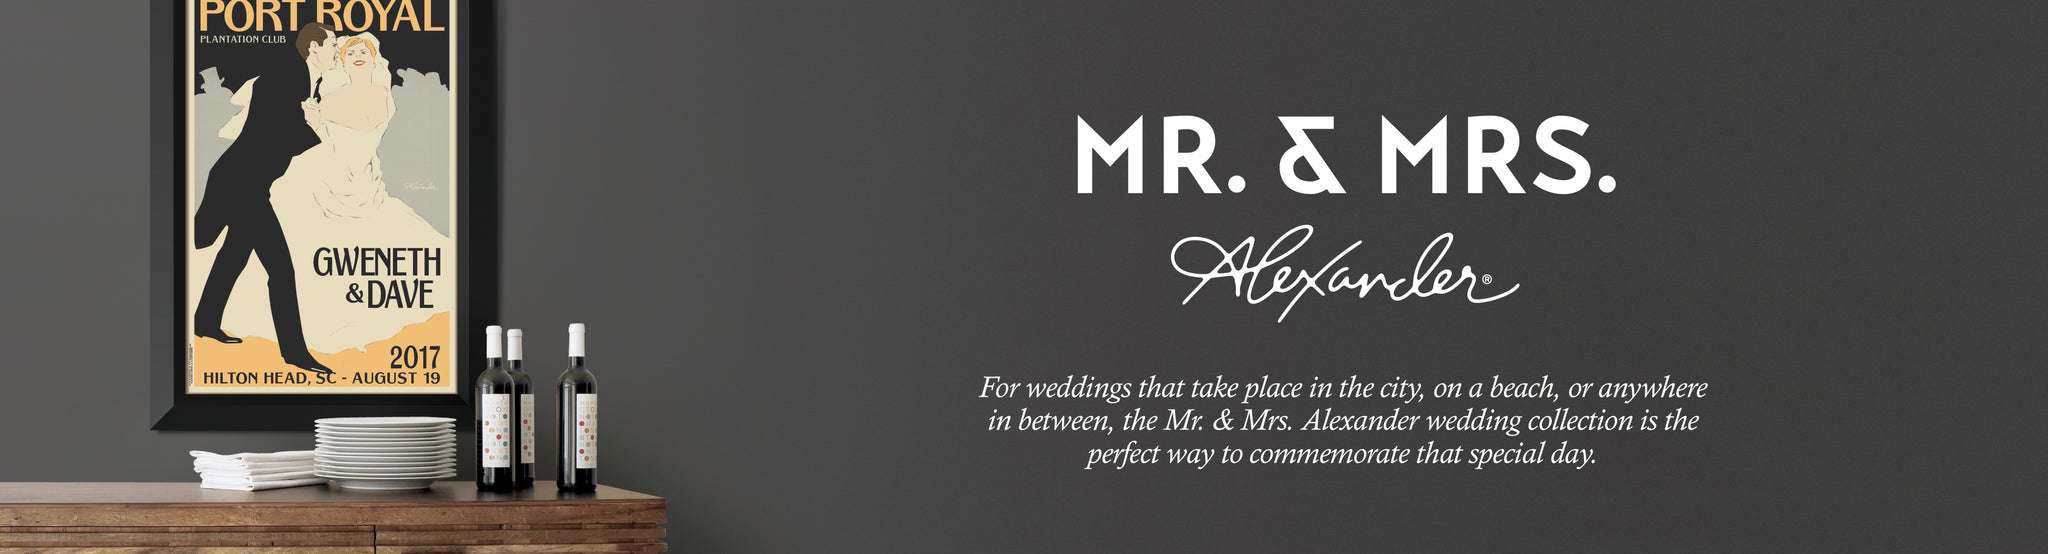 For weddings that take place in the city, on a beach, or anywhere in between, the Mr & Mrs Alexander wedding collection is the perfect way to commemorate that special day.